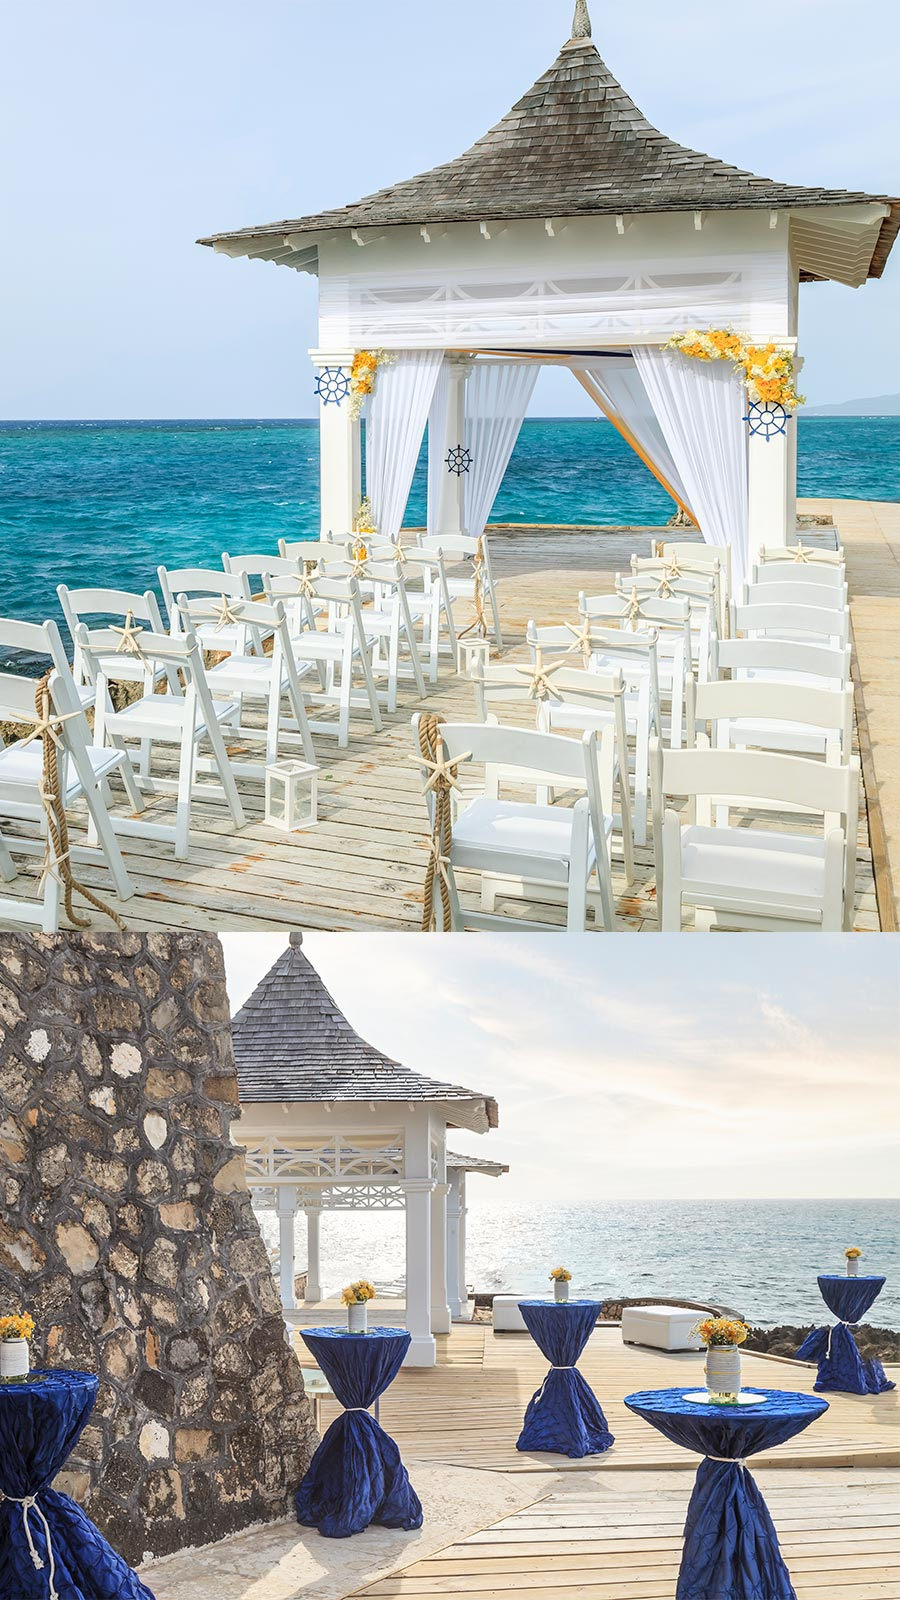 apple vacations jamaican destination wedding couples resorts tower isles ocho rios beach front wedding decor